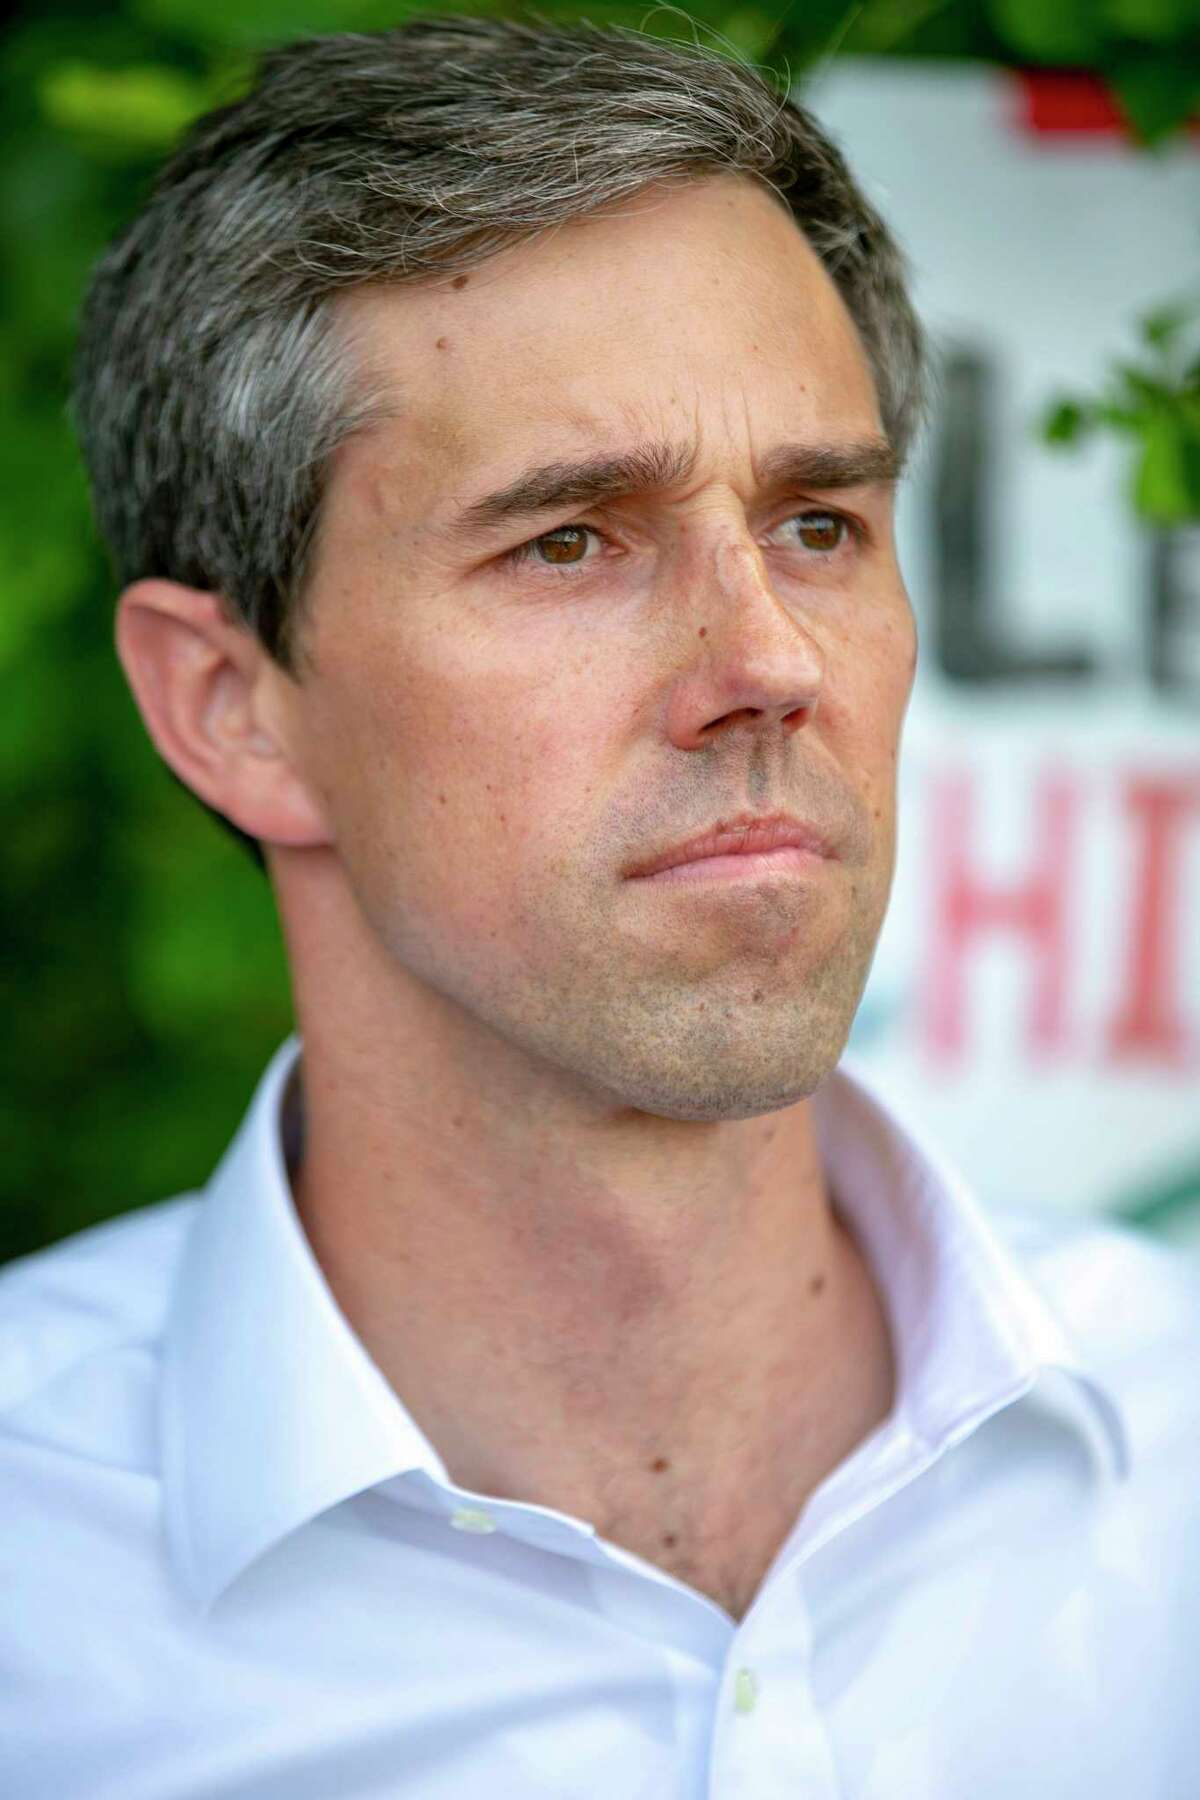 Democratic presidential candidate Beto O'Rourke looked emotional after being asked what he felt looking at the Homestead Detention Center ahead of the second Democratic Debates, in Homestead, Fla., on Thursday, June 27, 2019. (Daniel A. Varela/Miami Herald via AP)